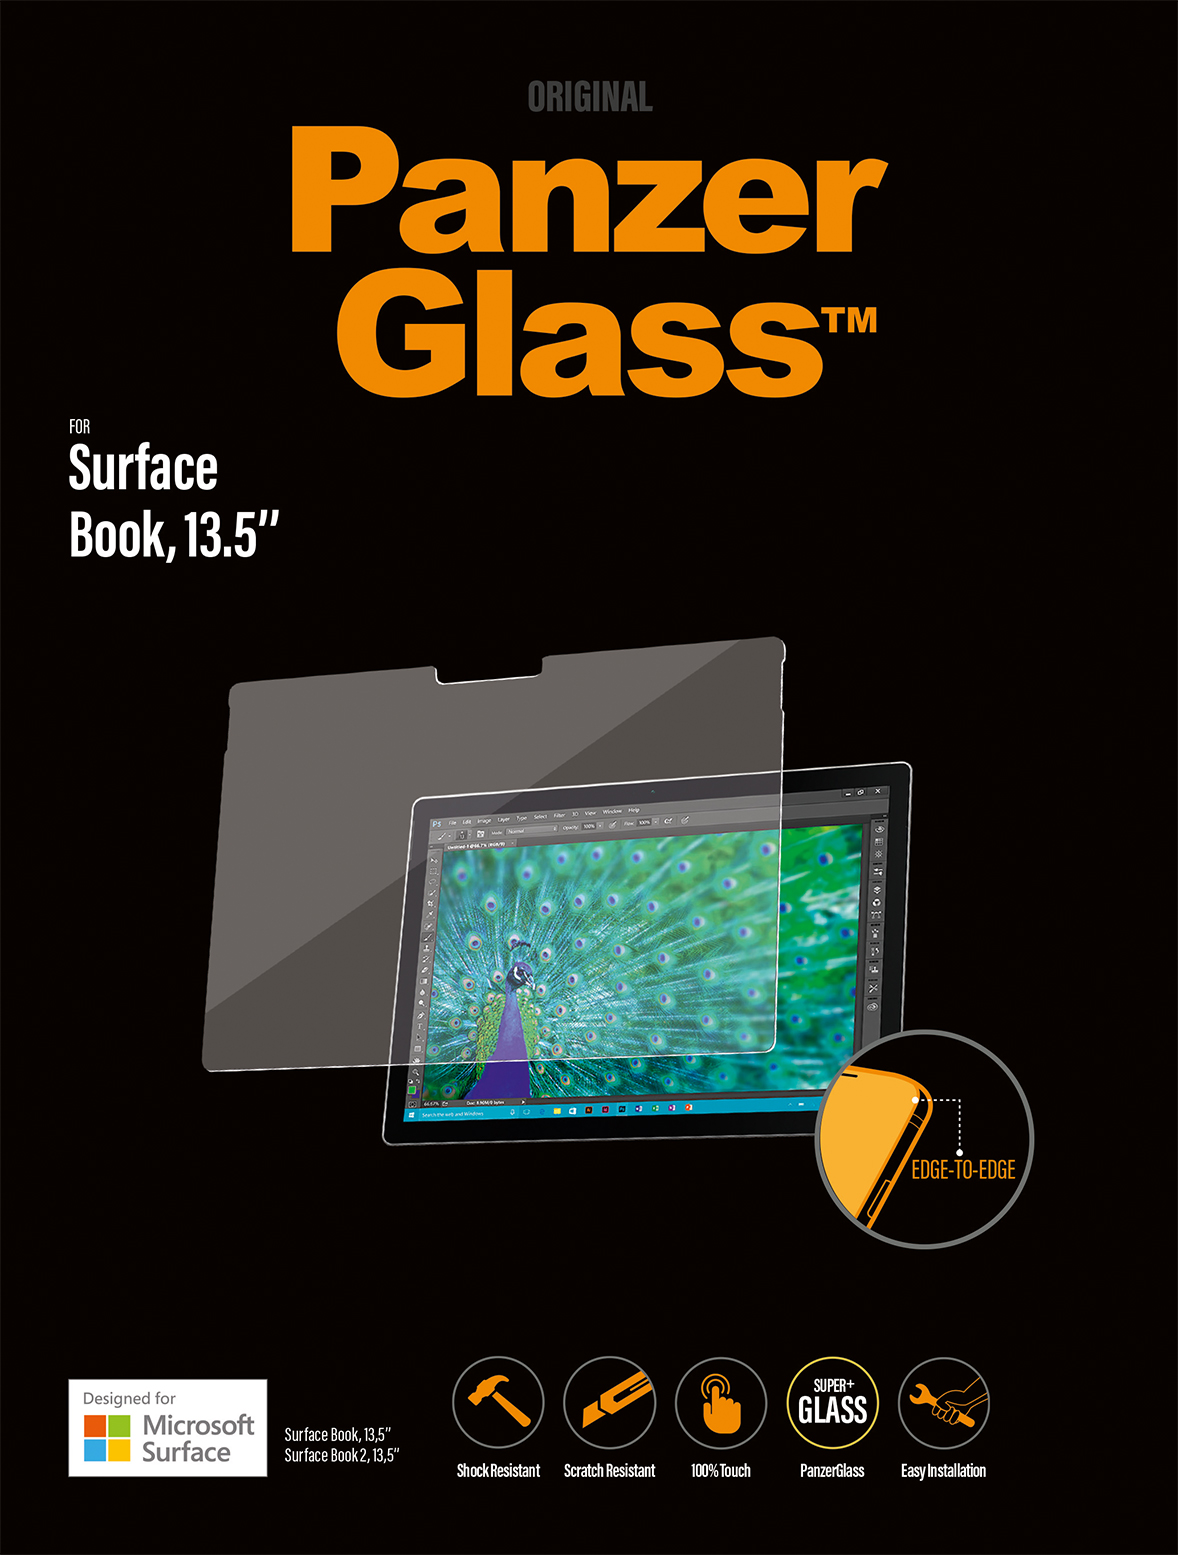 RE2OBrQ?ver=1e88 - PanzerGlass 13.5'' Surface Book Screen Protector